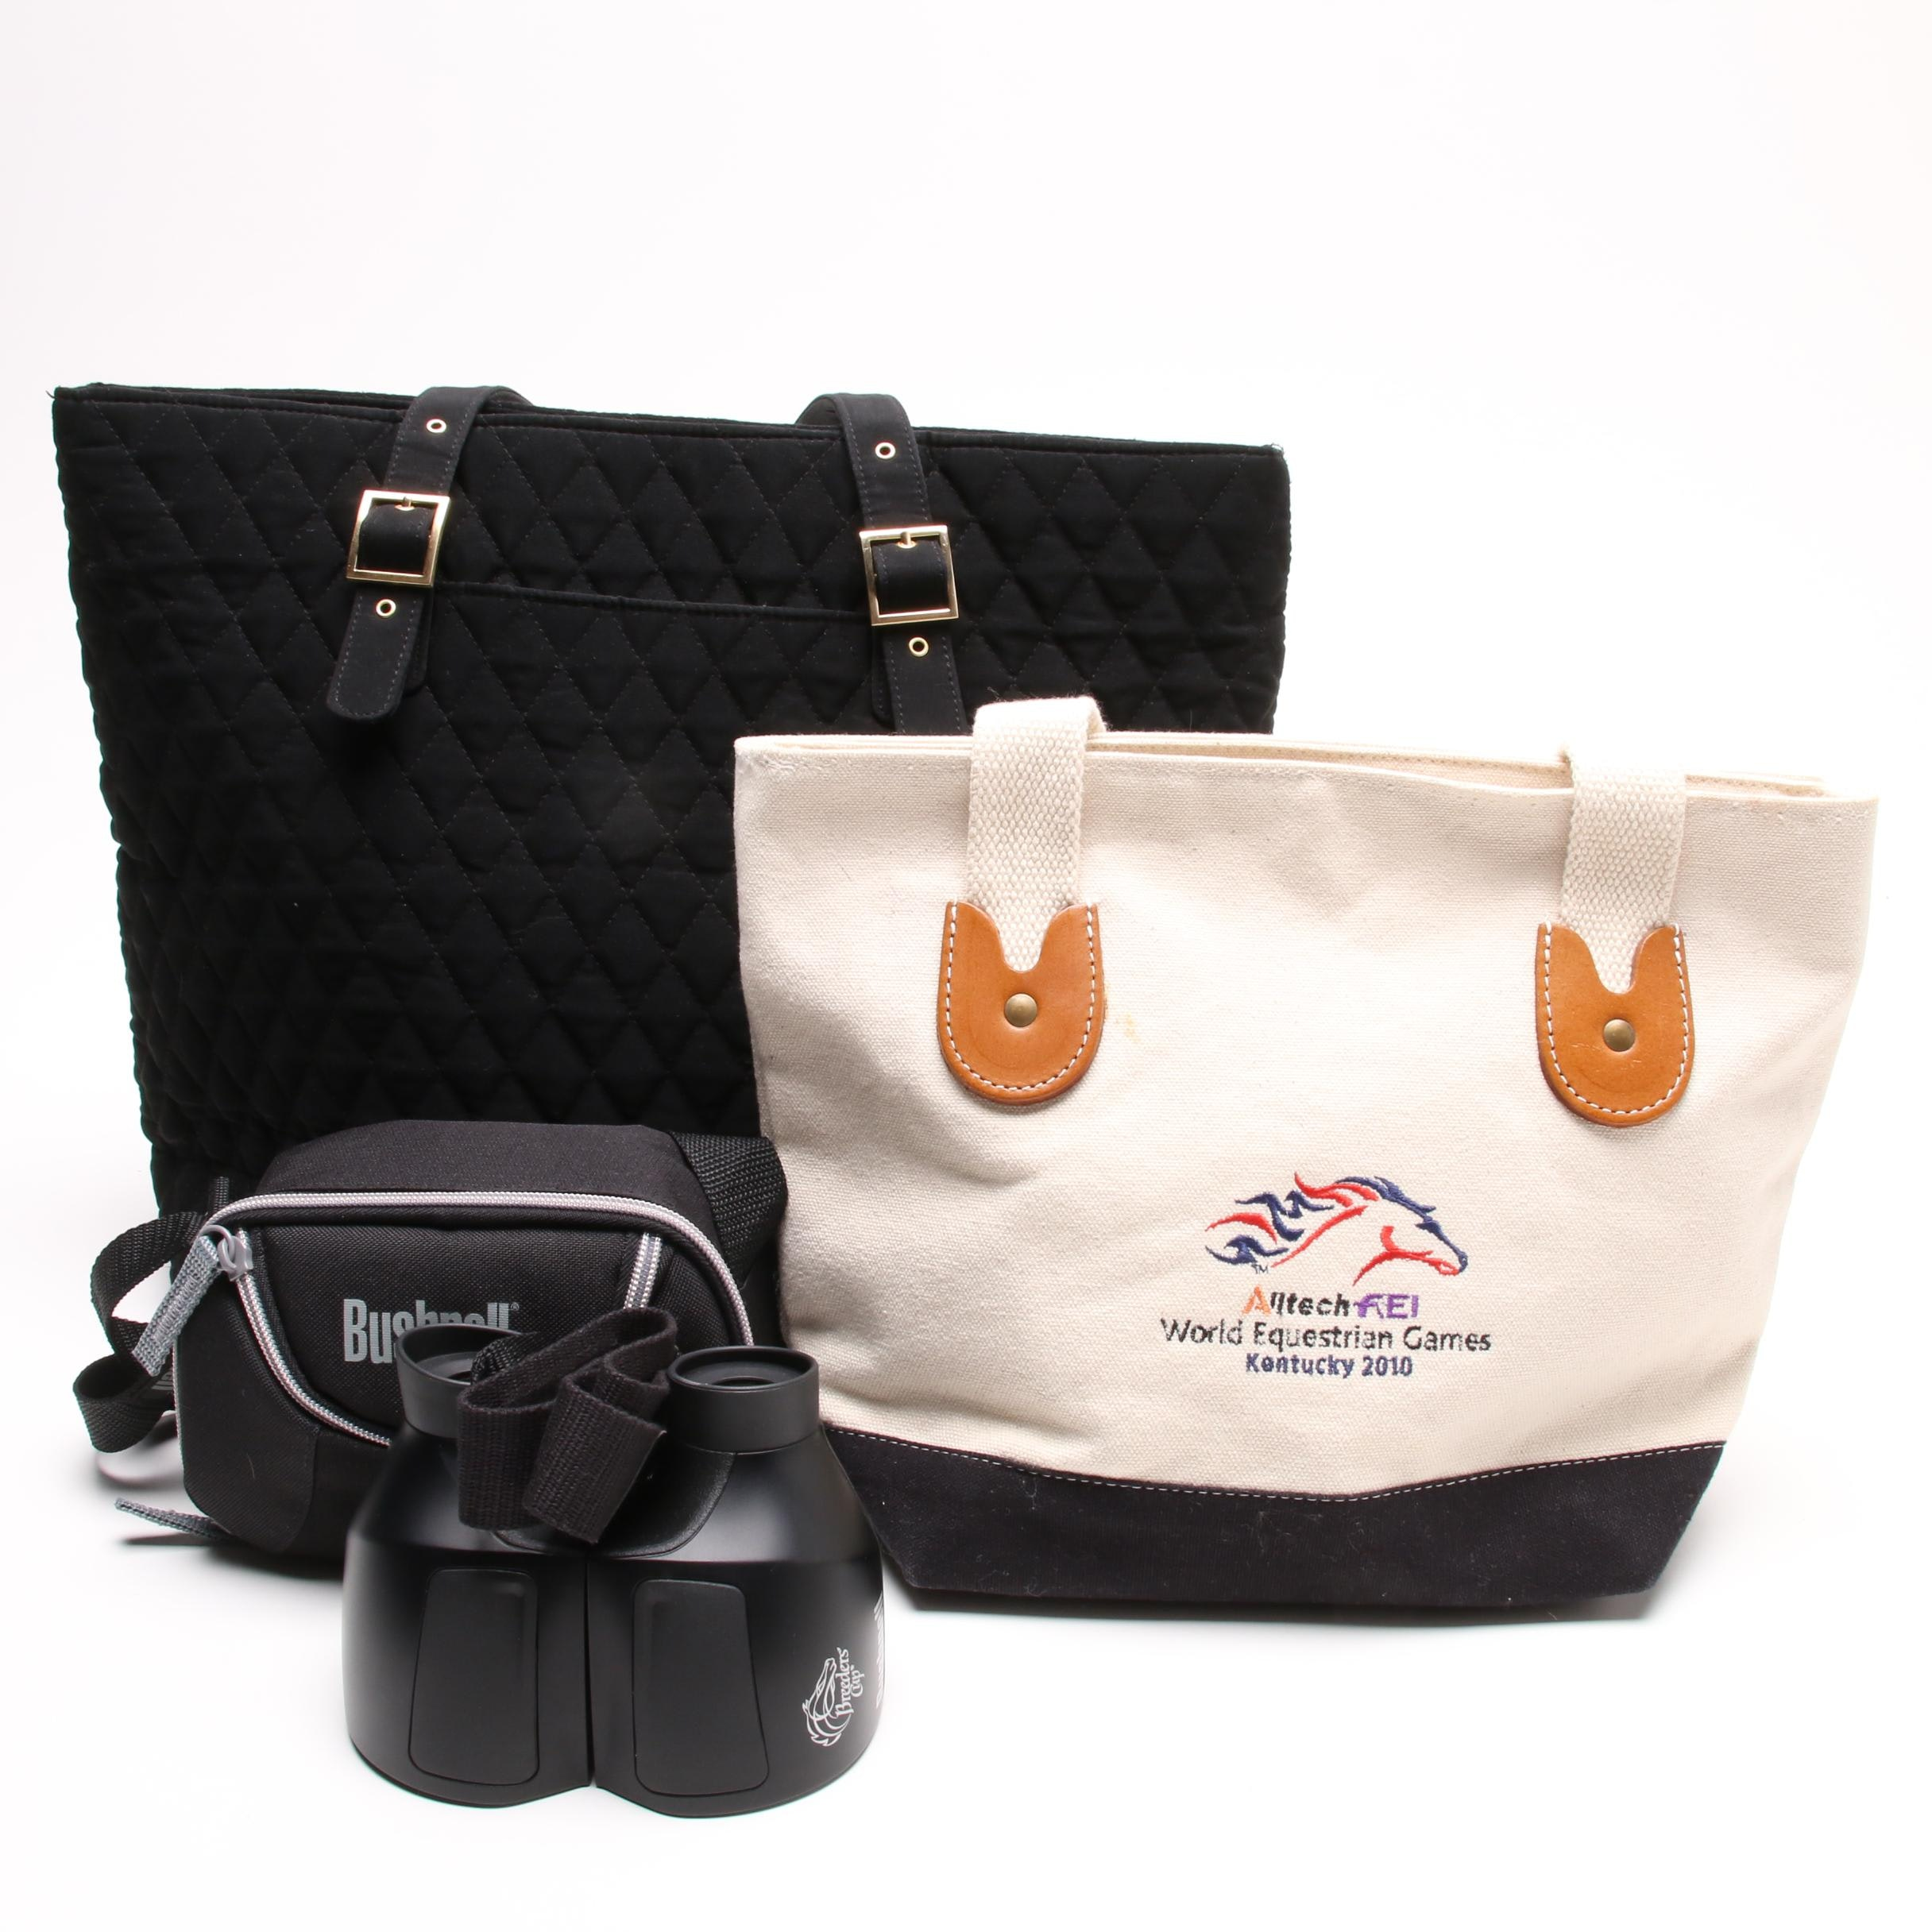 Vera Bradley Black Quilted Tote, Bushnell Breeders Cup Binoculars, and a Tote